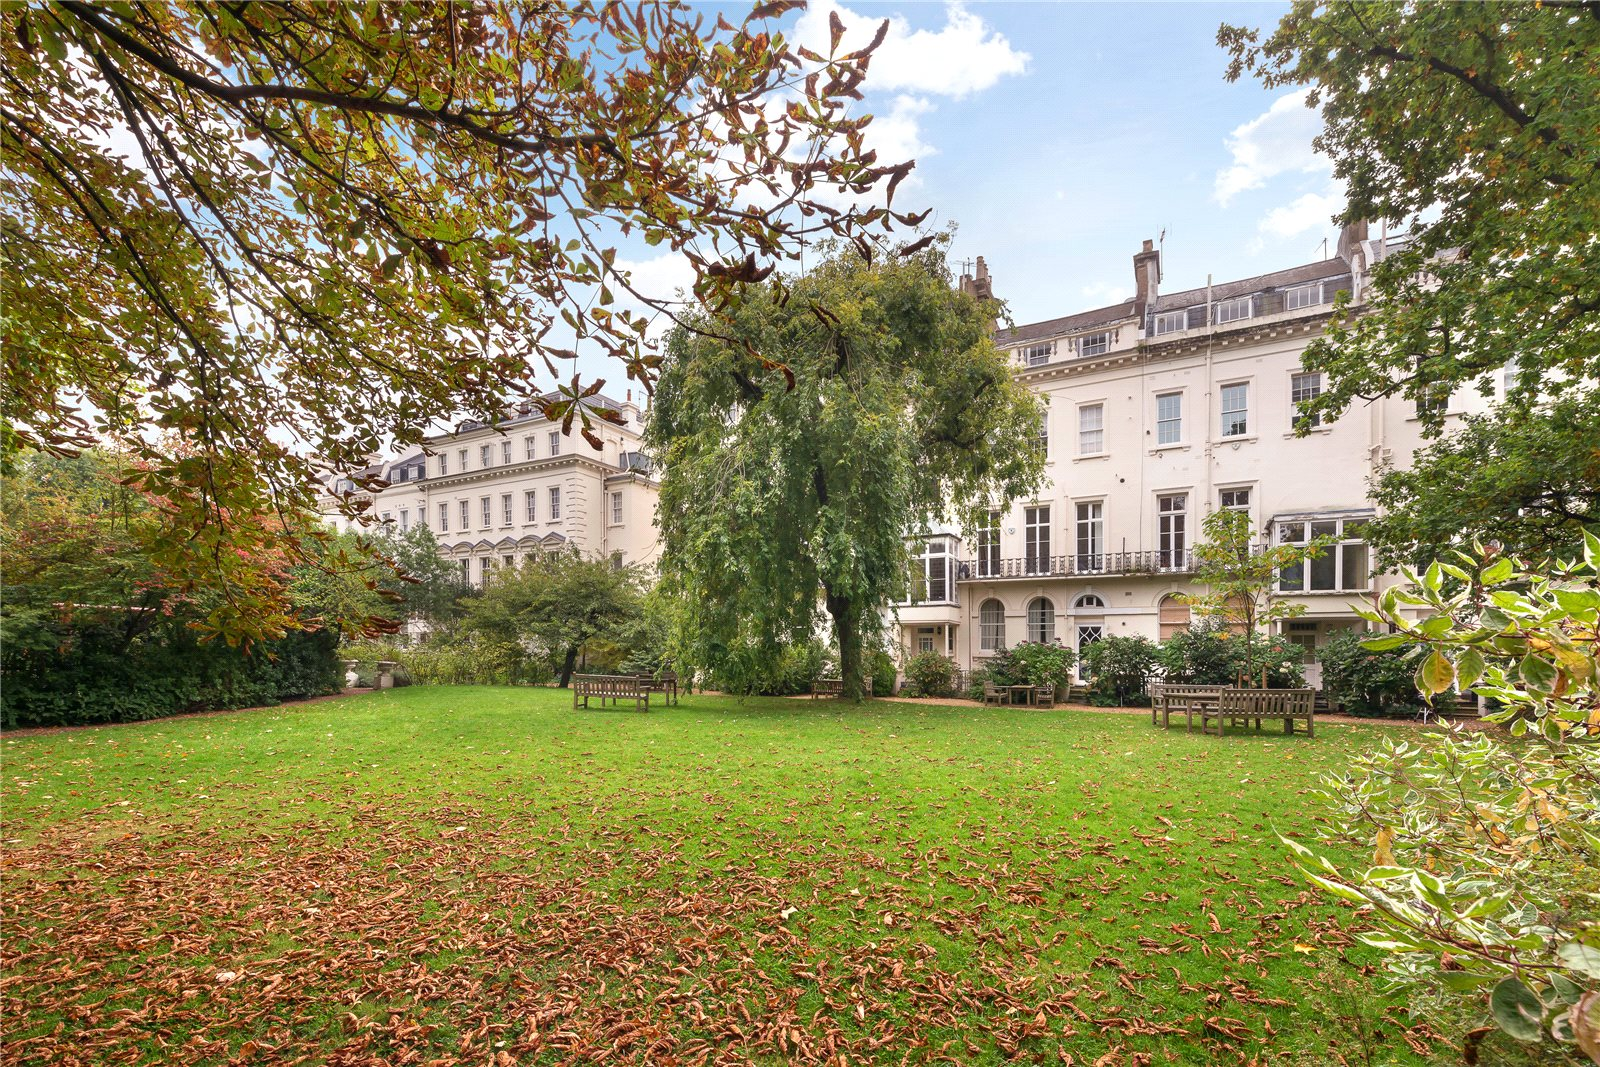 Additional photo for property listing at Kensington Park Gardens, London, W11 London, Inglaterra